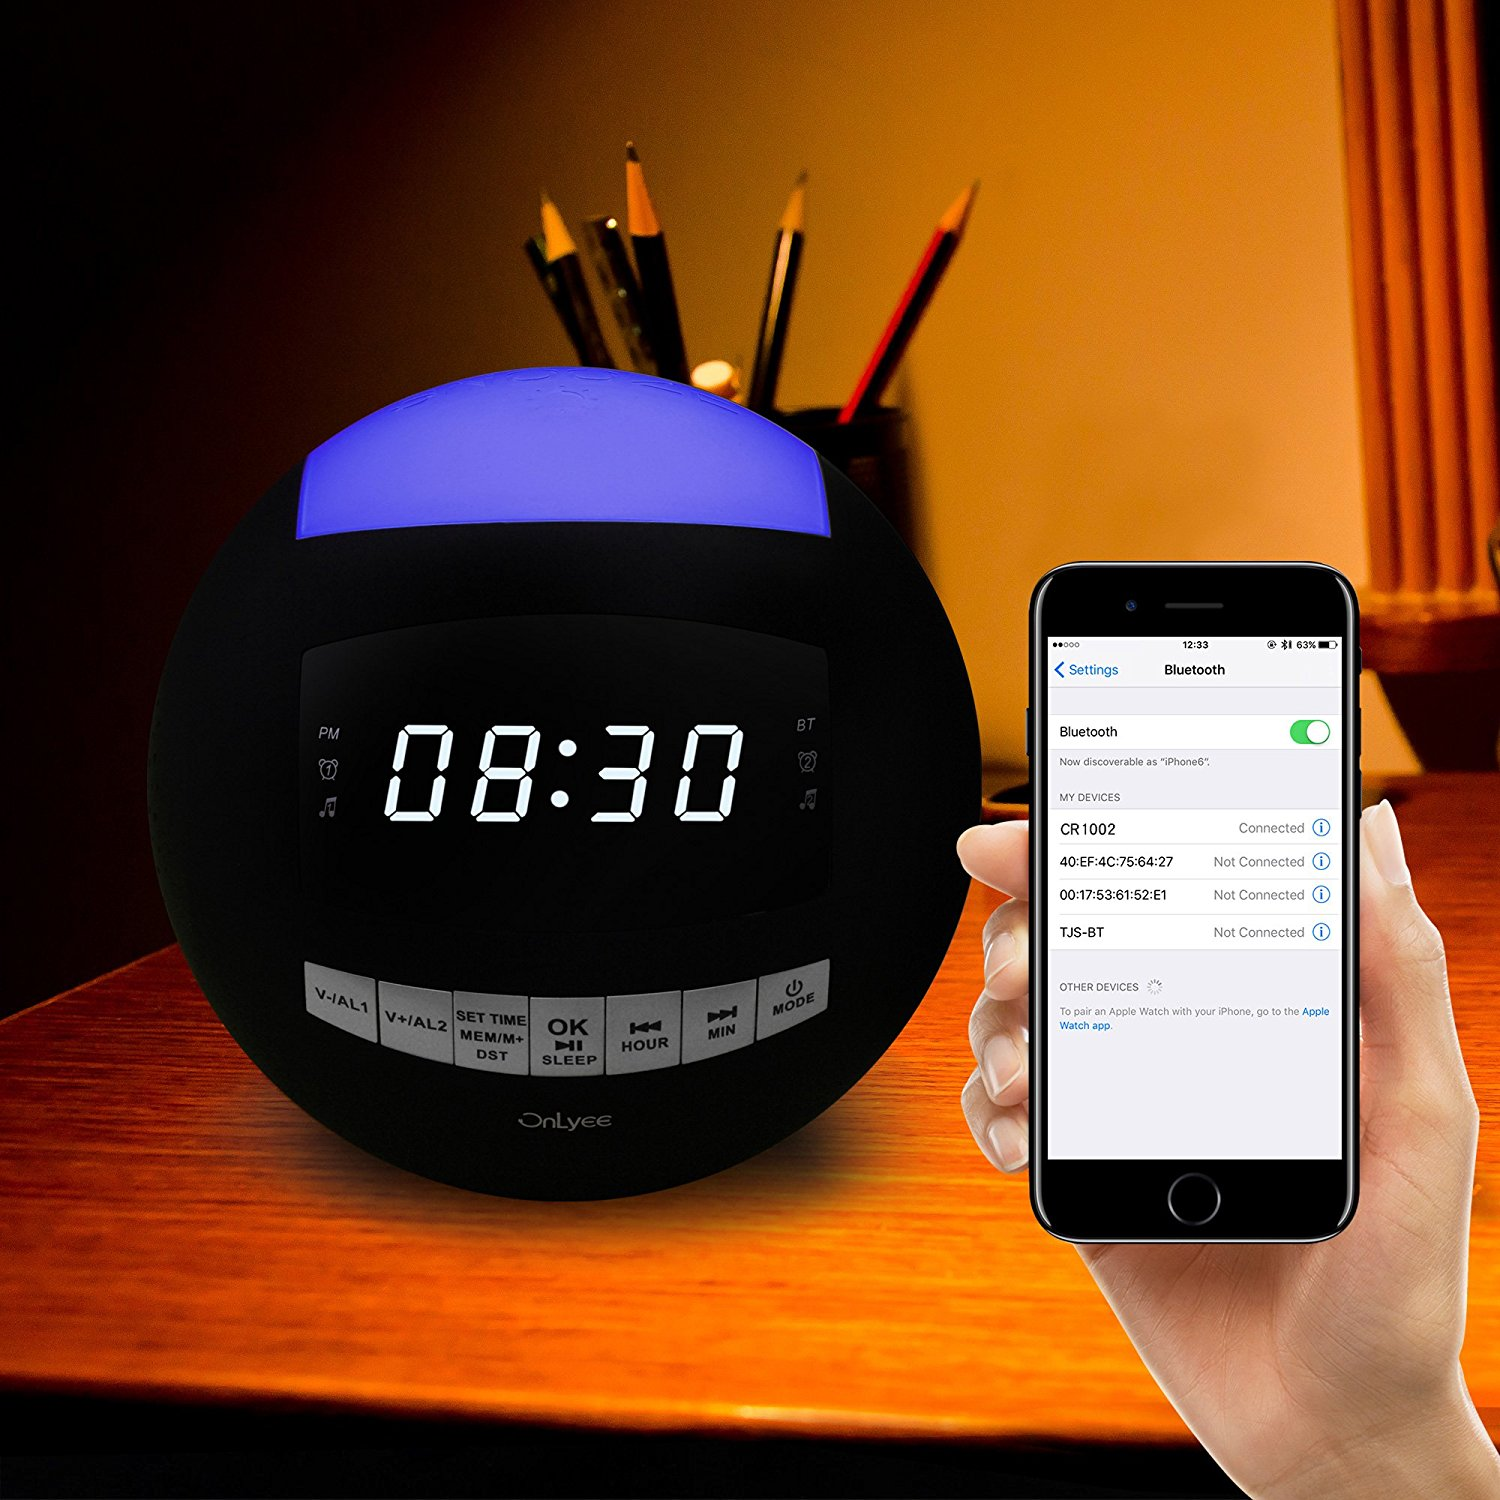 OnLyee Dual Alarm Clock FM Radio & Wireless Bluetooth Speaker with USB Charging,Multi-Color LED Night Light,Hands-free Calls,Snooze(Batteries Included) image 3